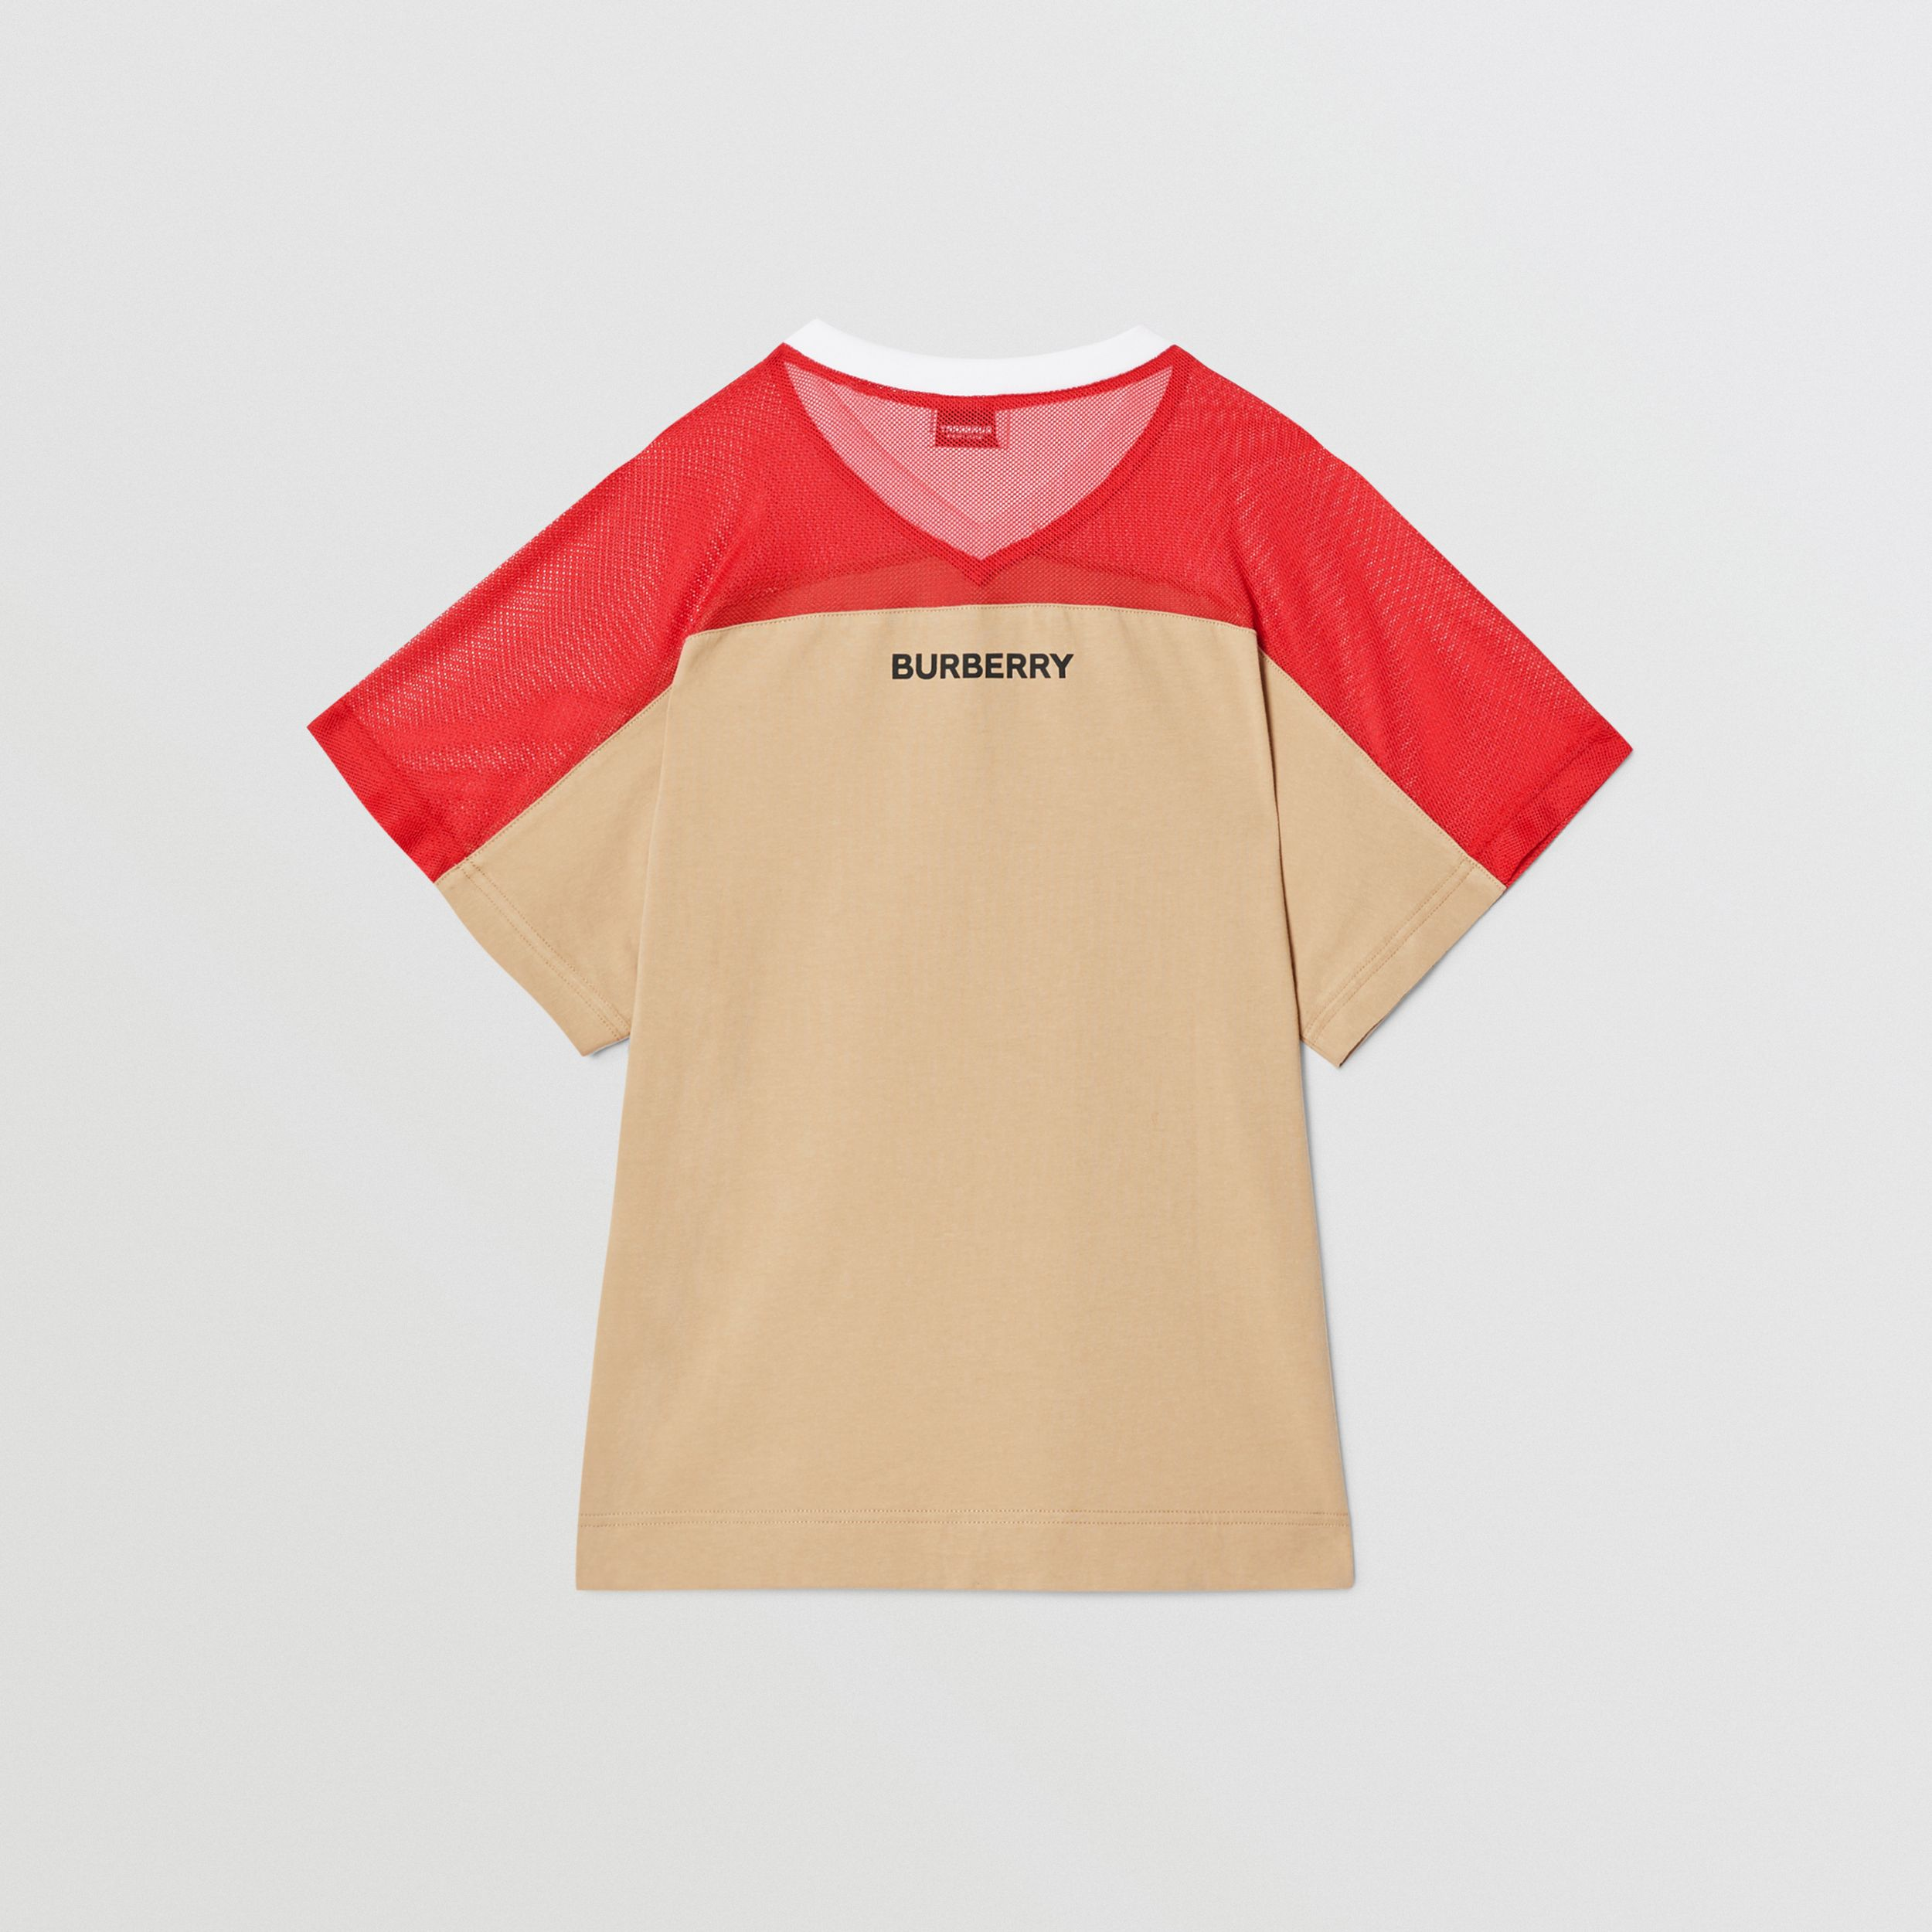 Mesh Panel Kingdom Print Cotton T-shirt in Bright Red | Burberry - 3